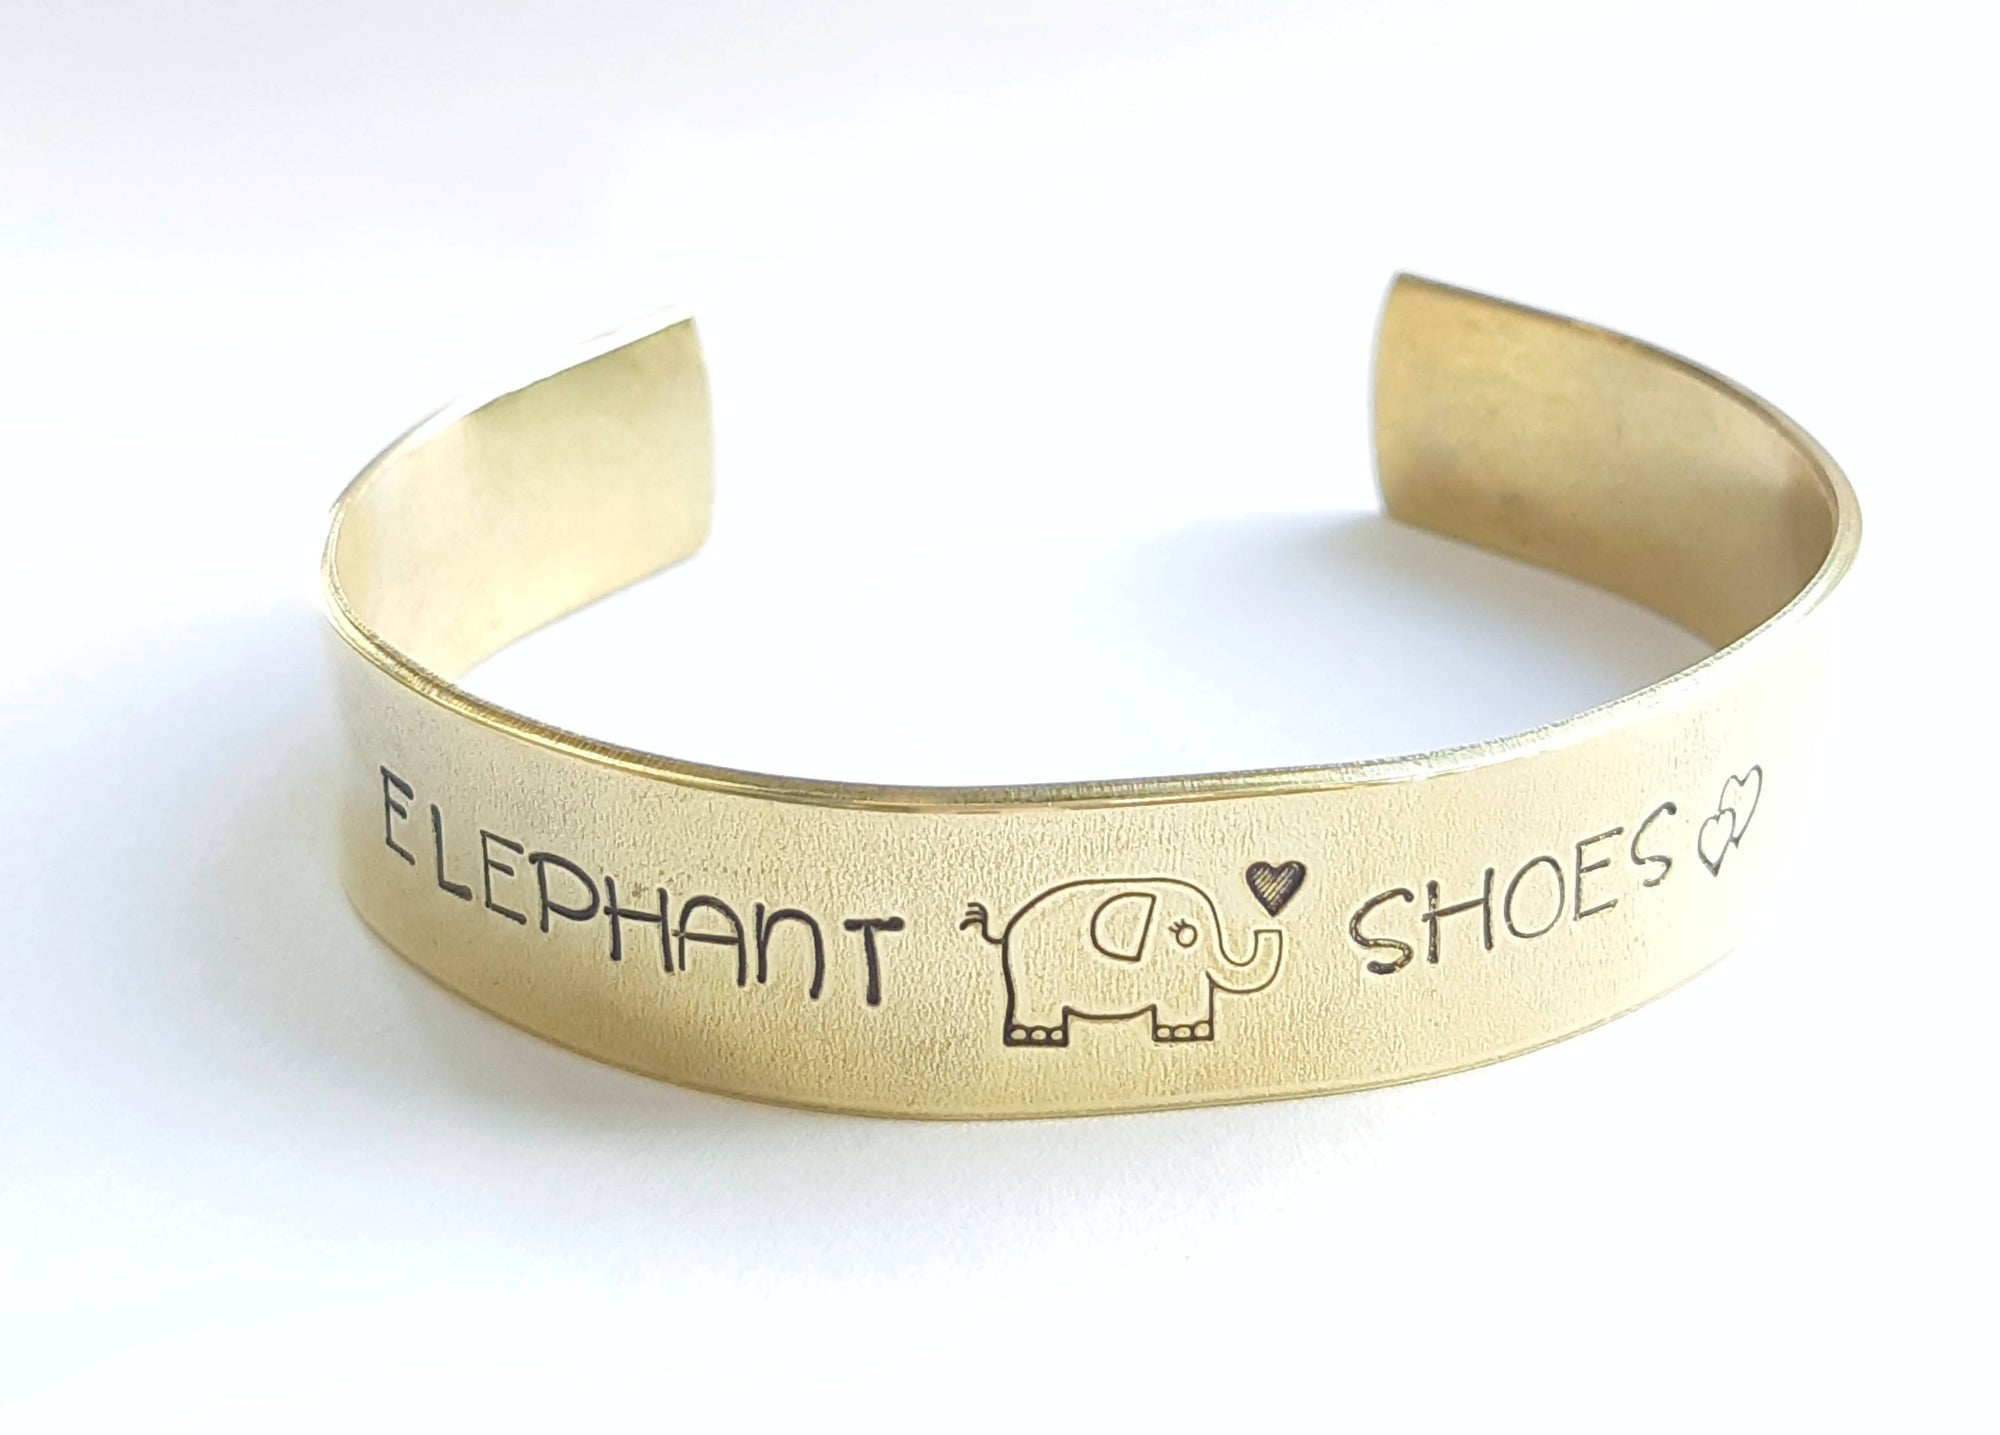 Elephant Shoes Brass Cuff